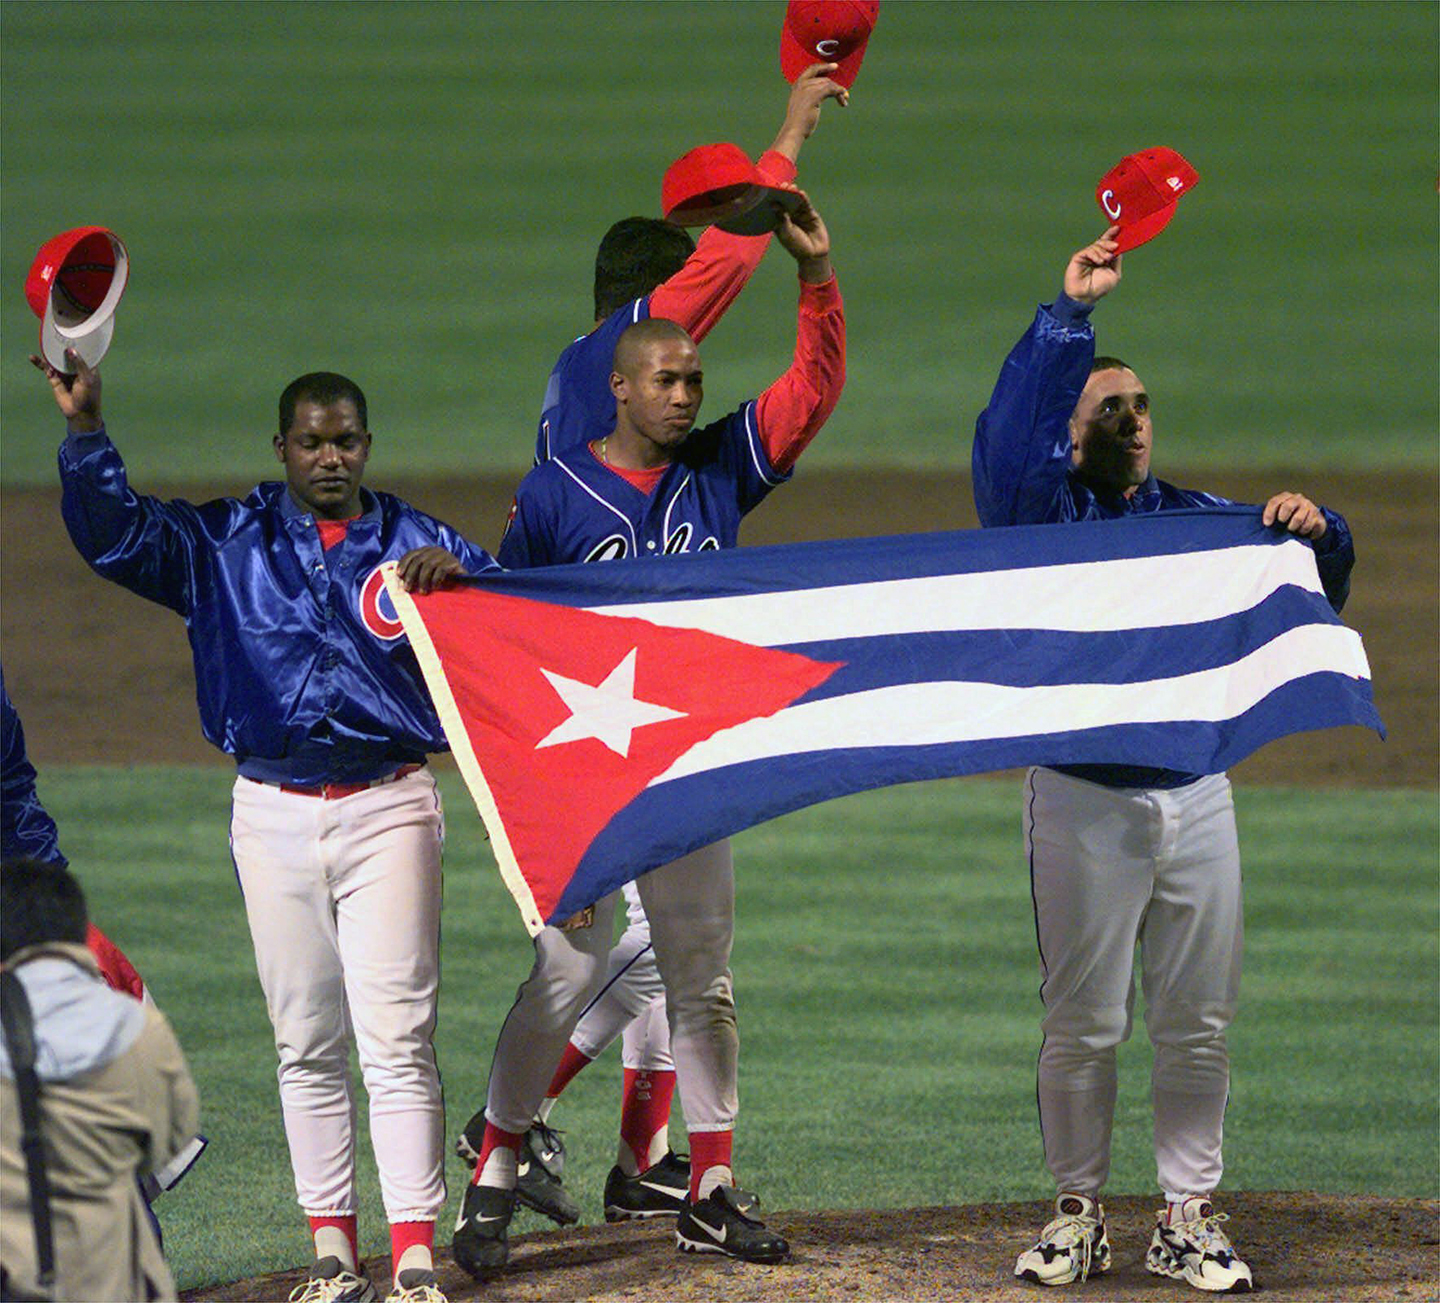 'Realization Of An Impossible Dream': MLB And Cuba Make Historic Deal